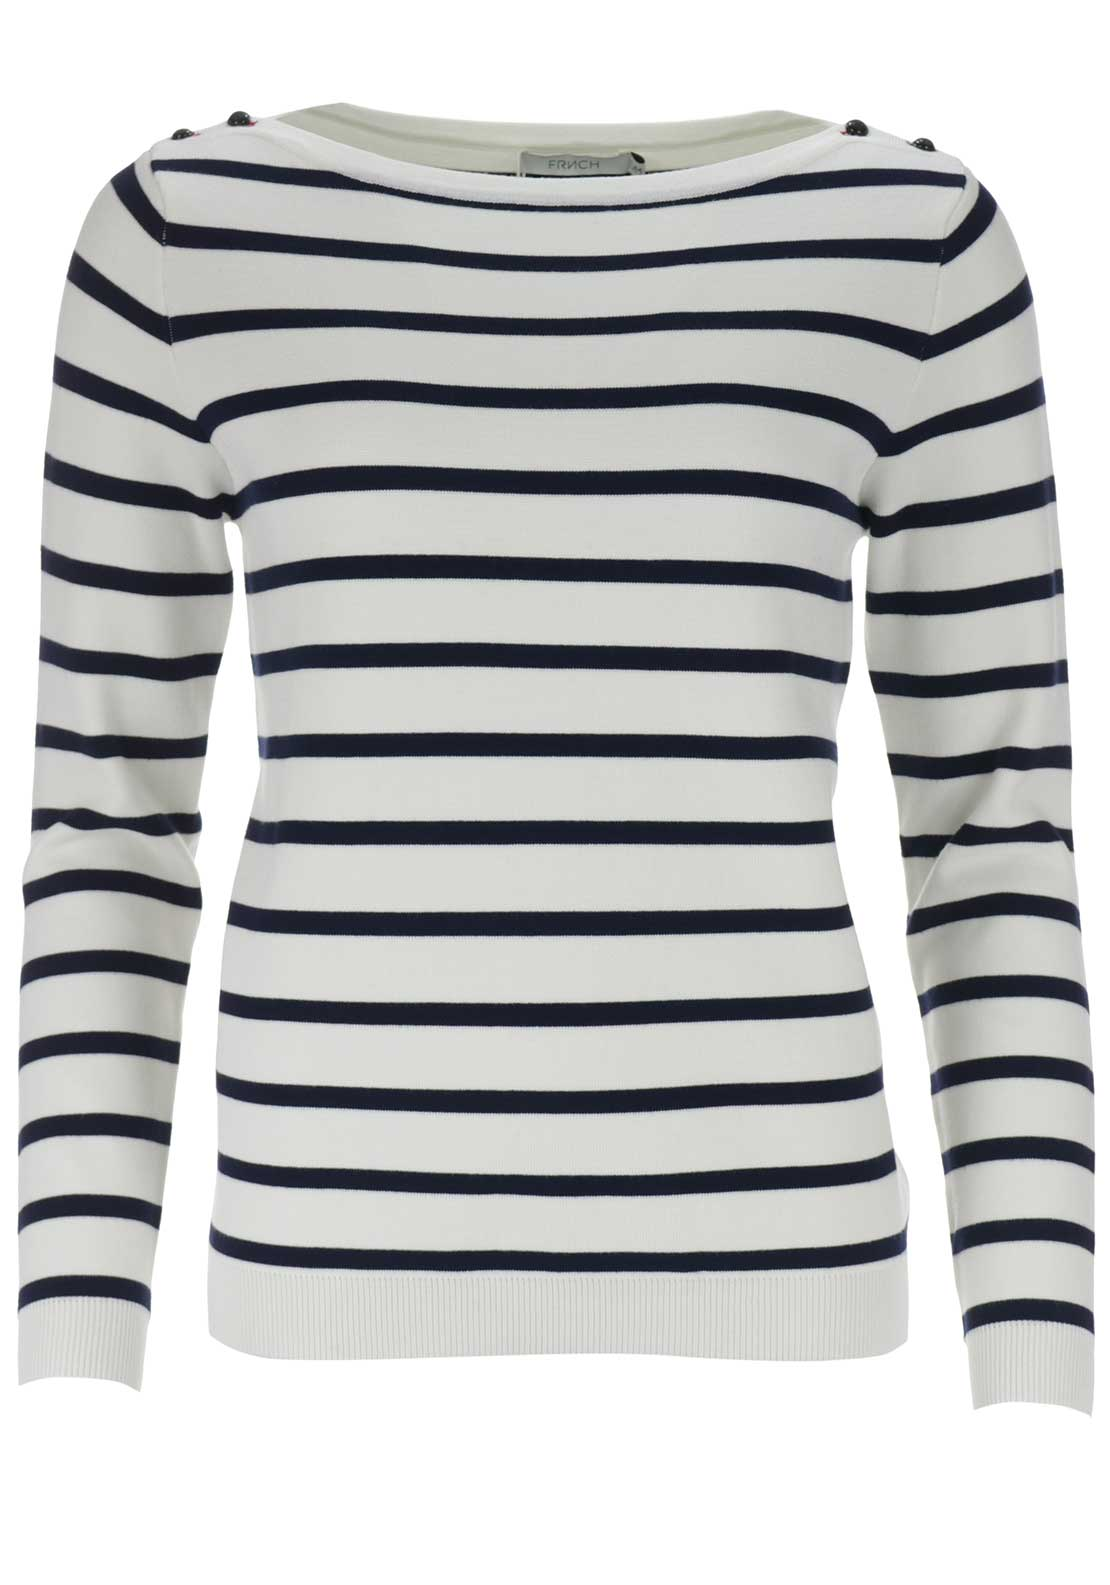 FRNCH Striped Knit Jumper, White